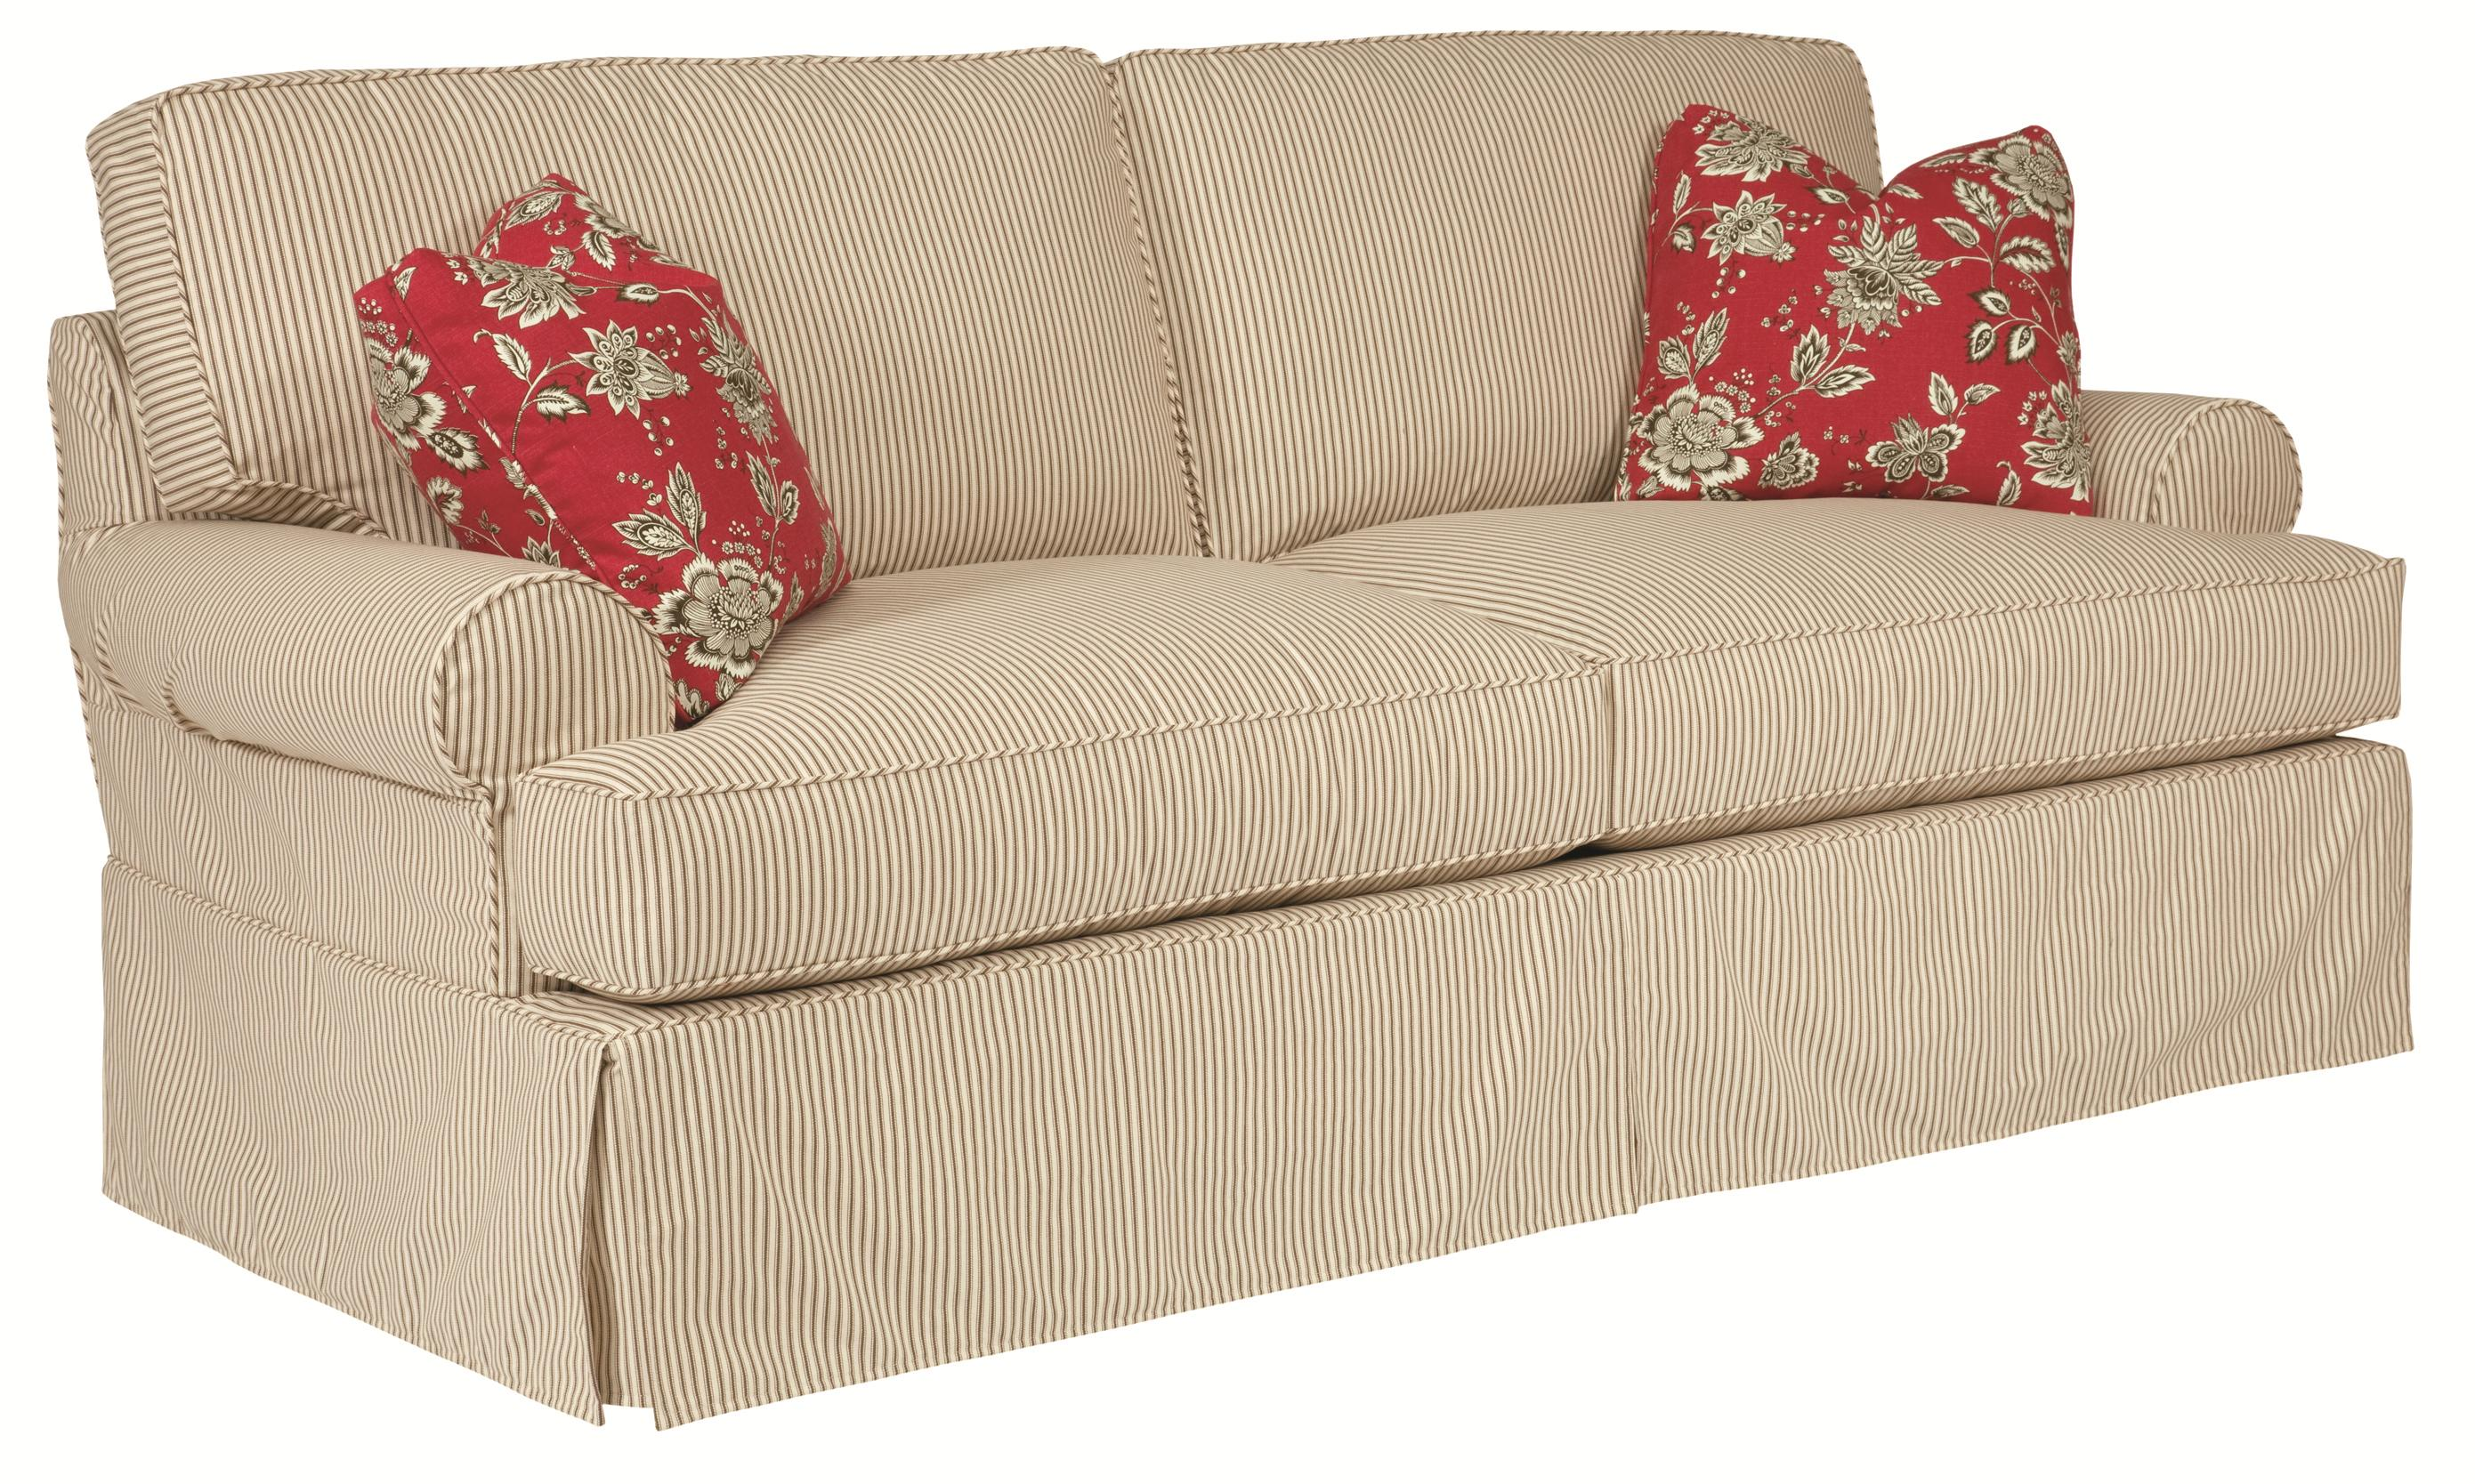 Kincaid Furniture Samantha Slipcover Queen Sleeper With Slipcover